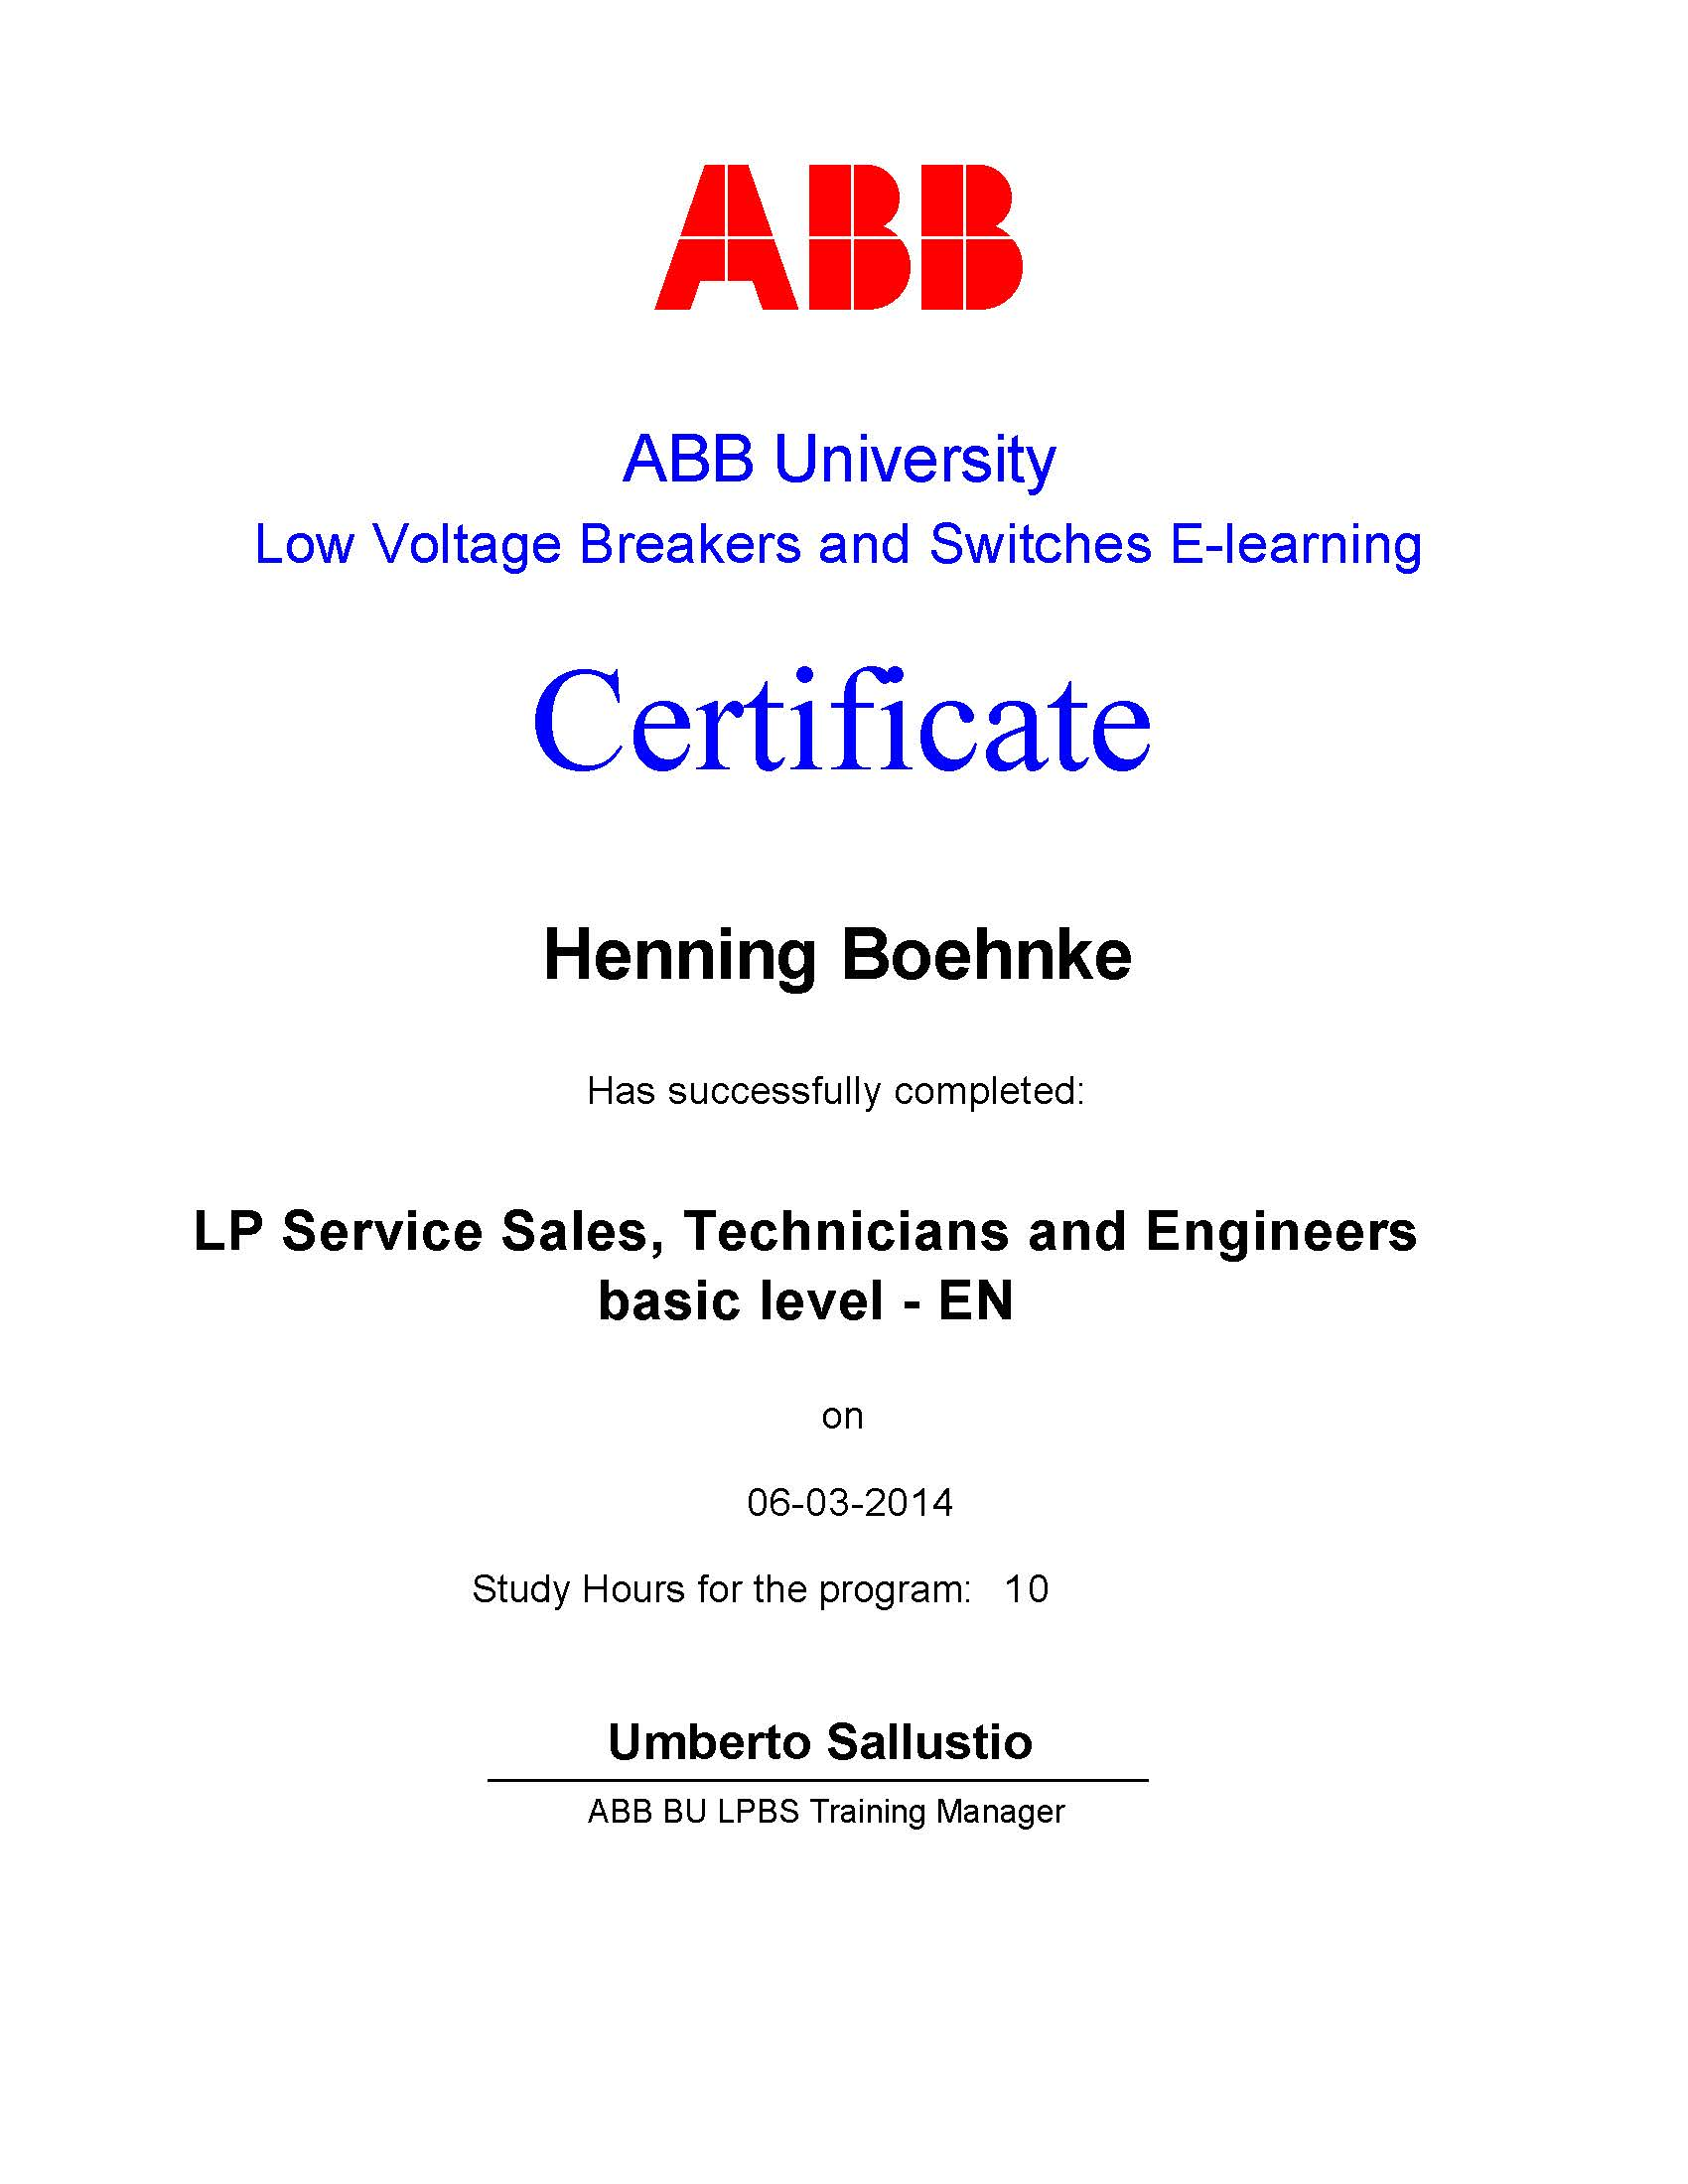 LP Service Sales, Technicians and Engineers Basic Level